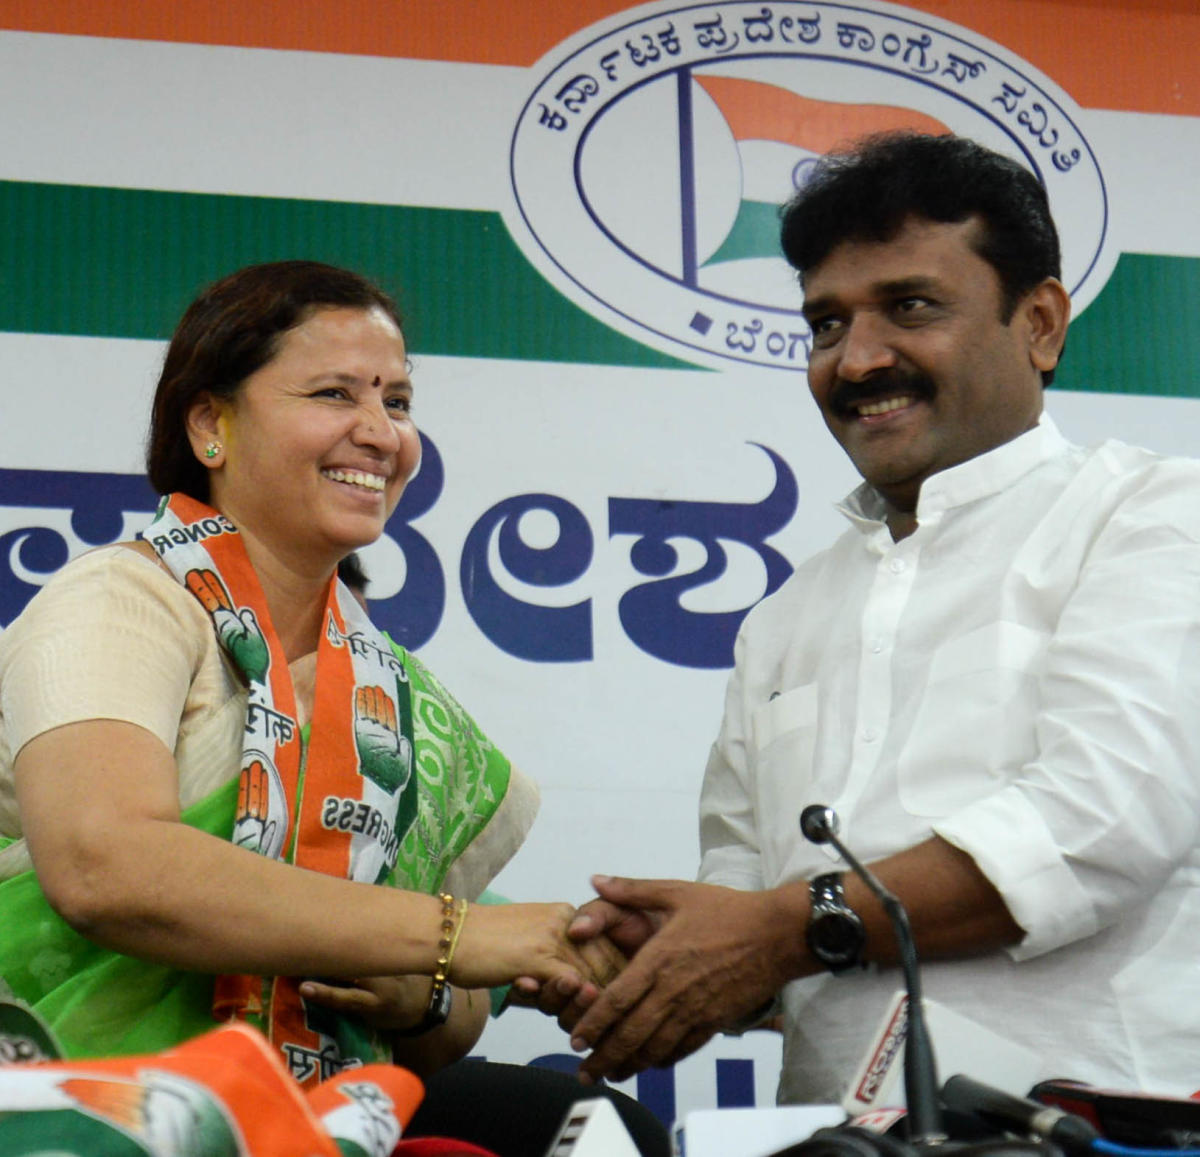 Chickamagalur District BJP leaders former ZP Chairperson Rekha Huliyappagowda, joined Congress in presence of Rajyasabha Member G C Chandrashekar, with Former Municipal President Putte Gowda and their followers, at KPCC Office on Sunday. DH Photo